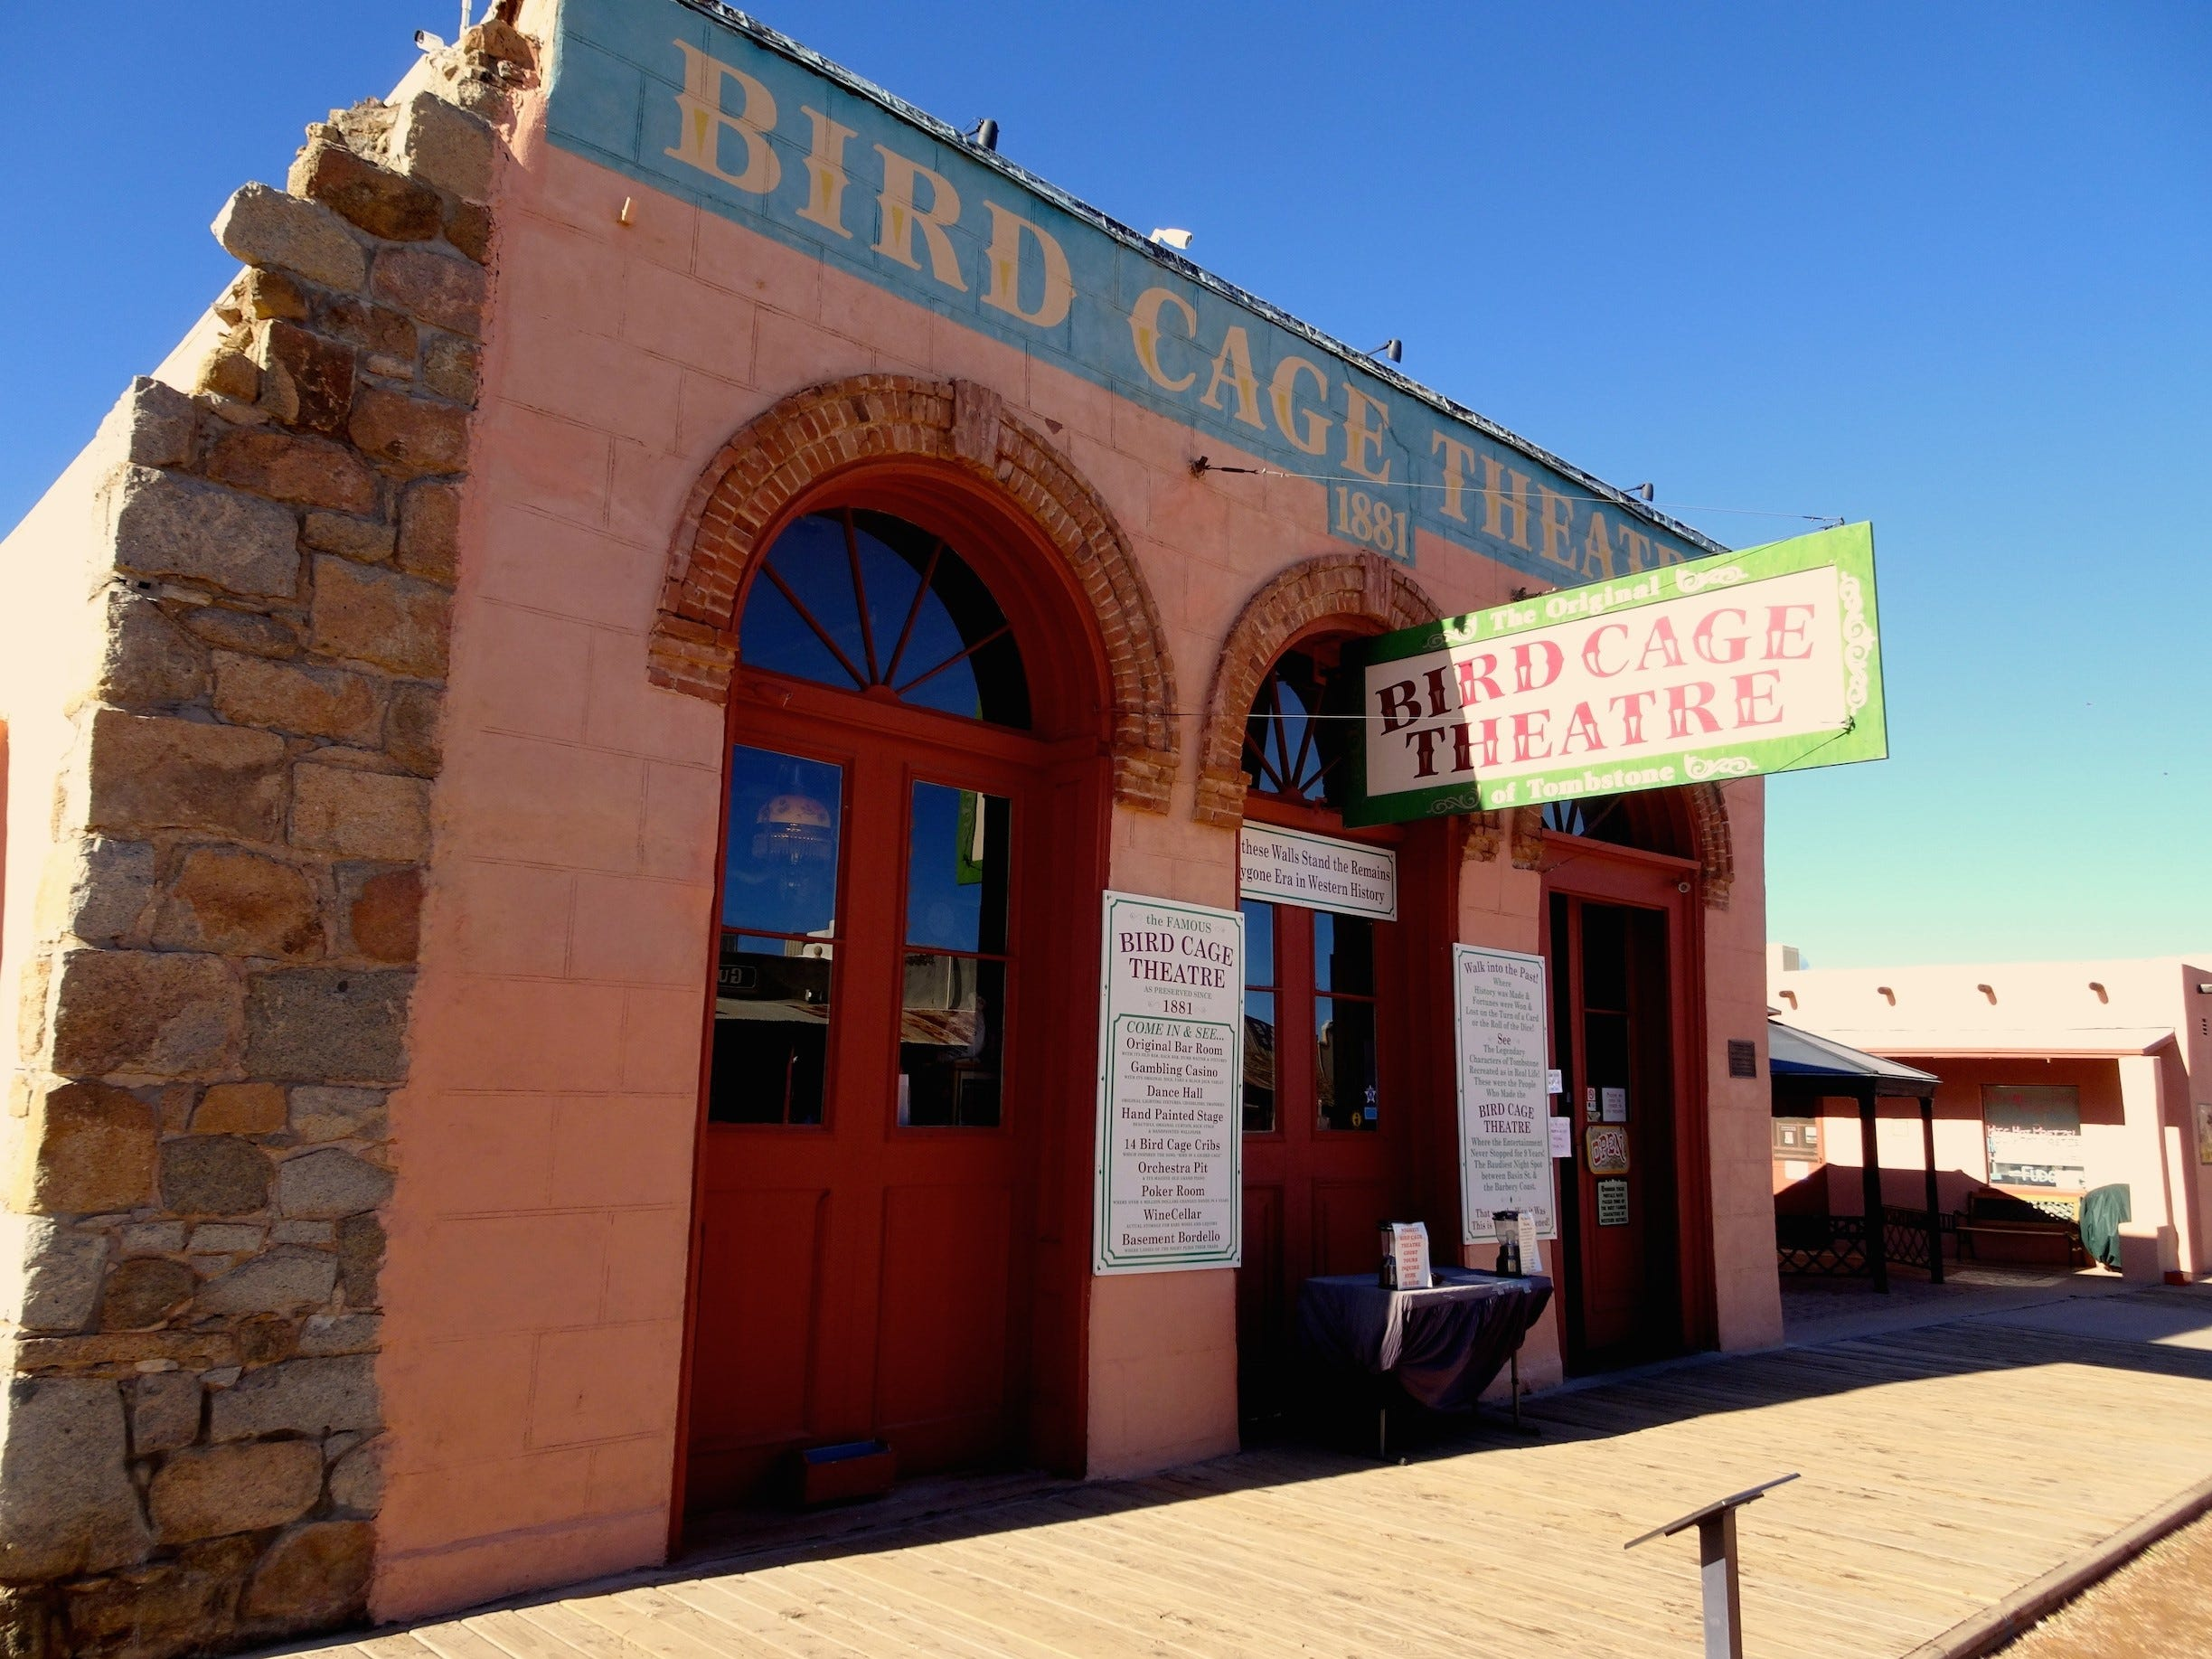 The Birdcage Theatre offers a step back in time to Tombstone's rowdy history.